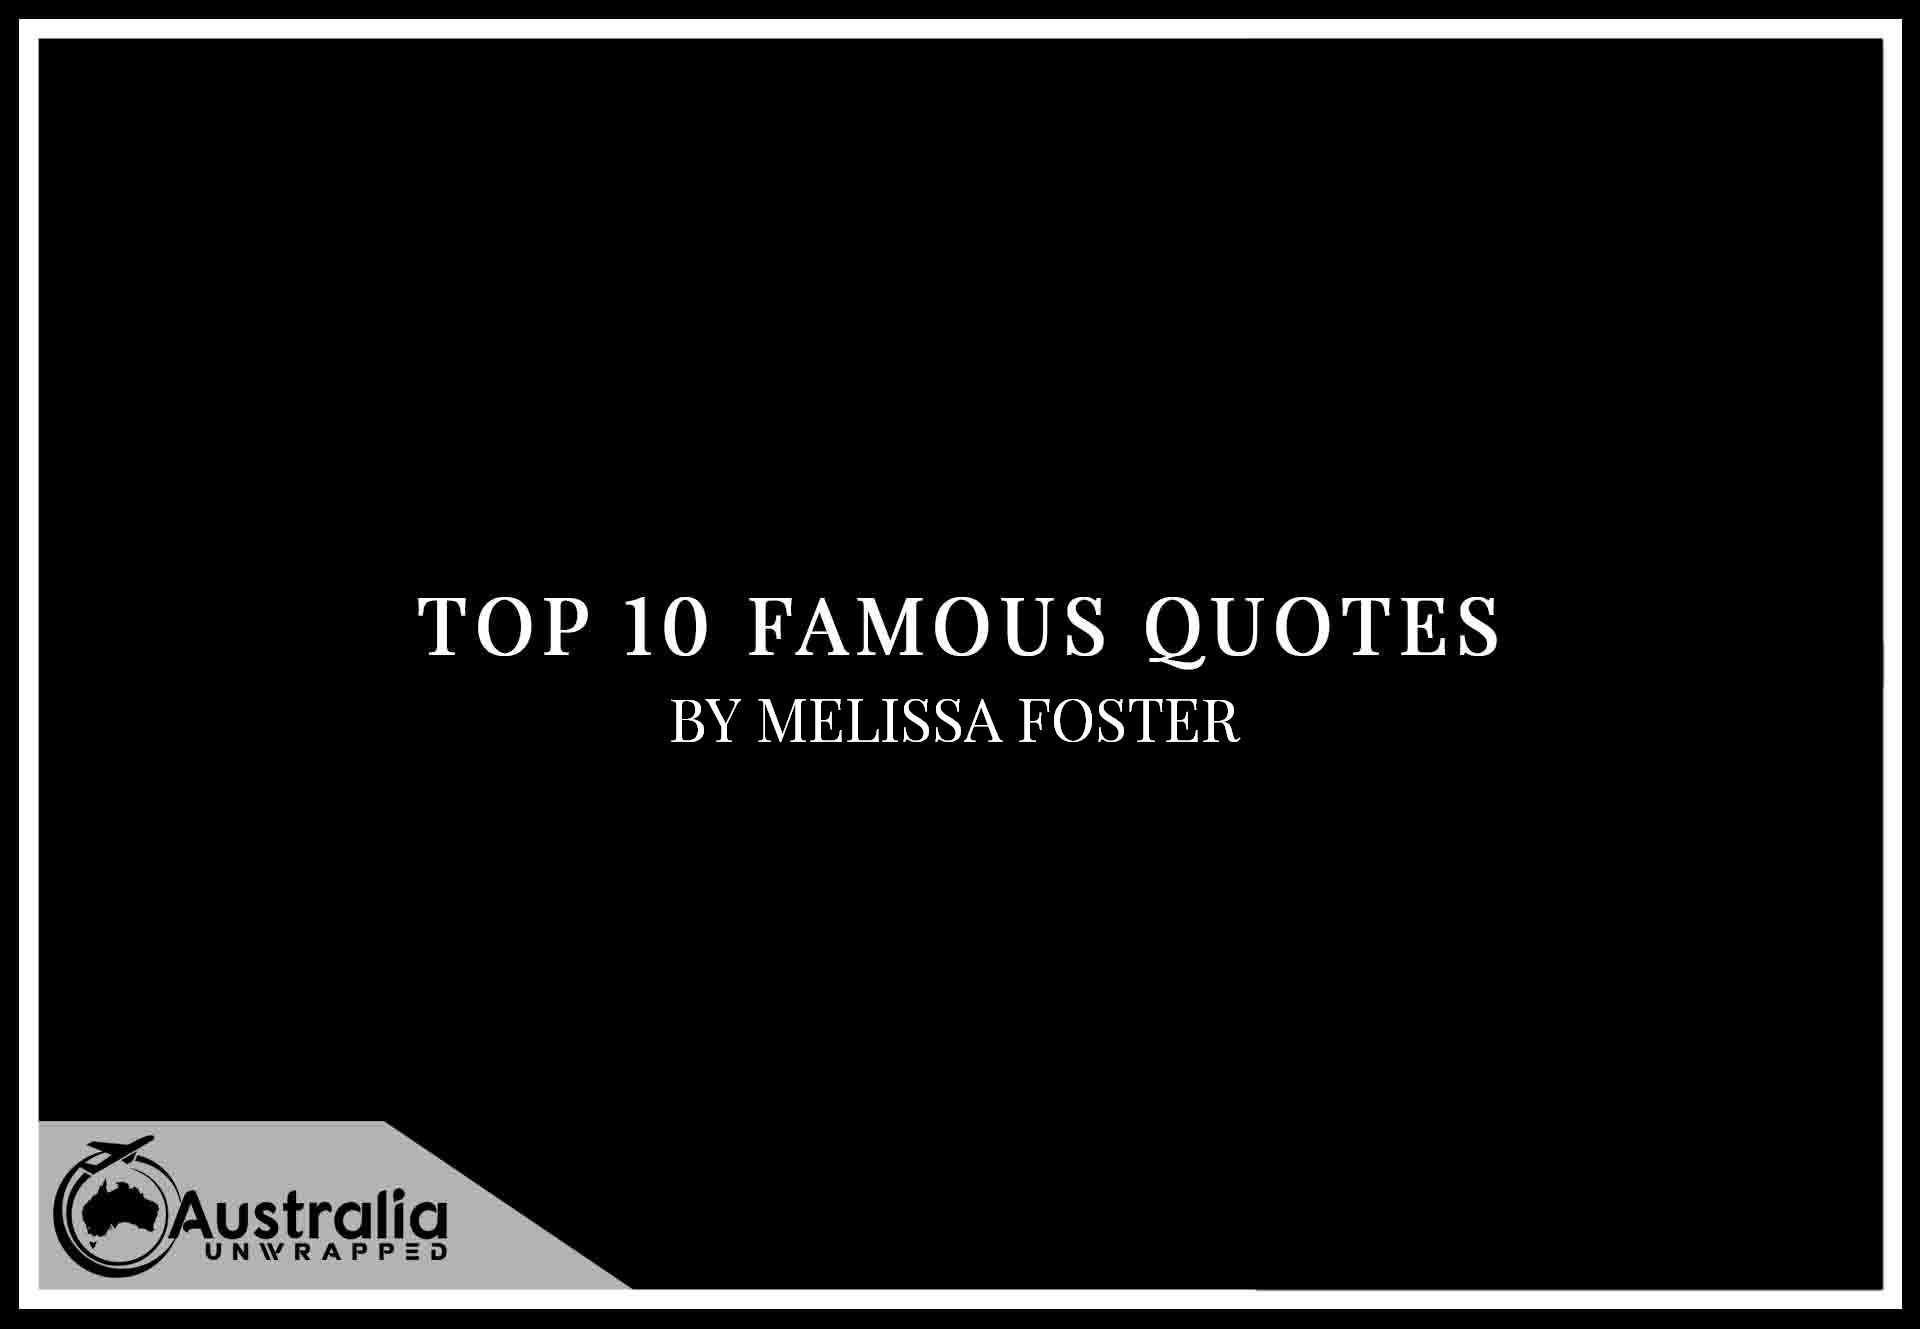 Top 10 Famous Quotes by Author Melissa Foster